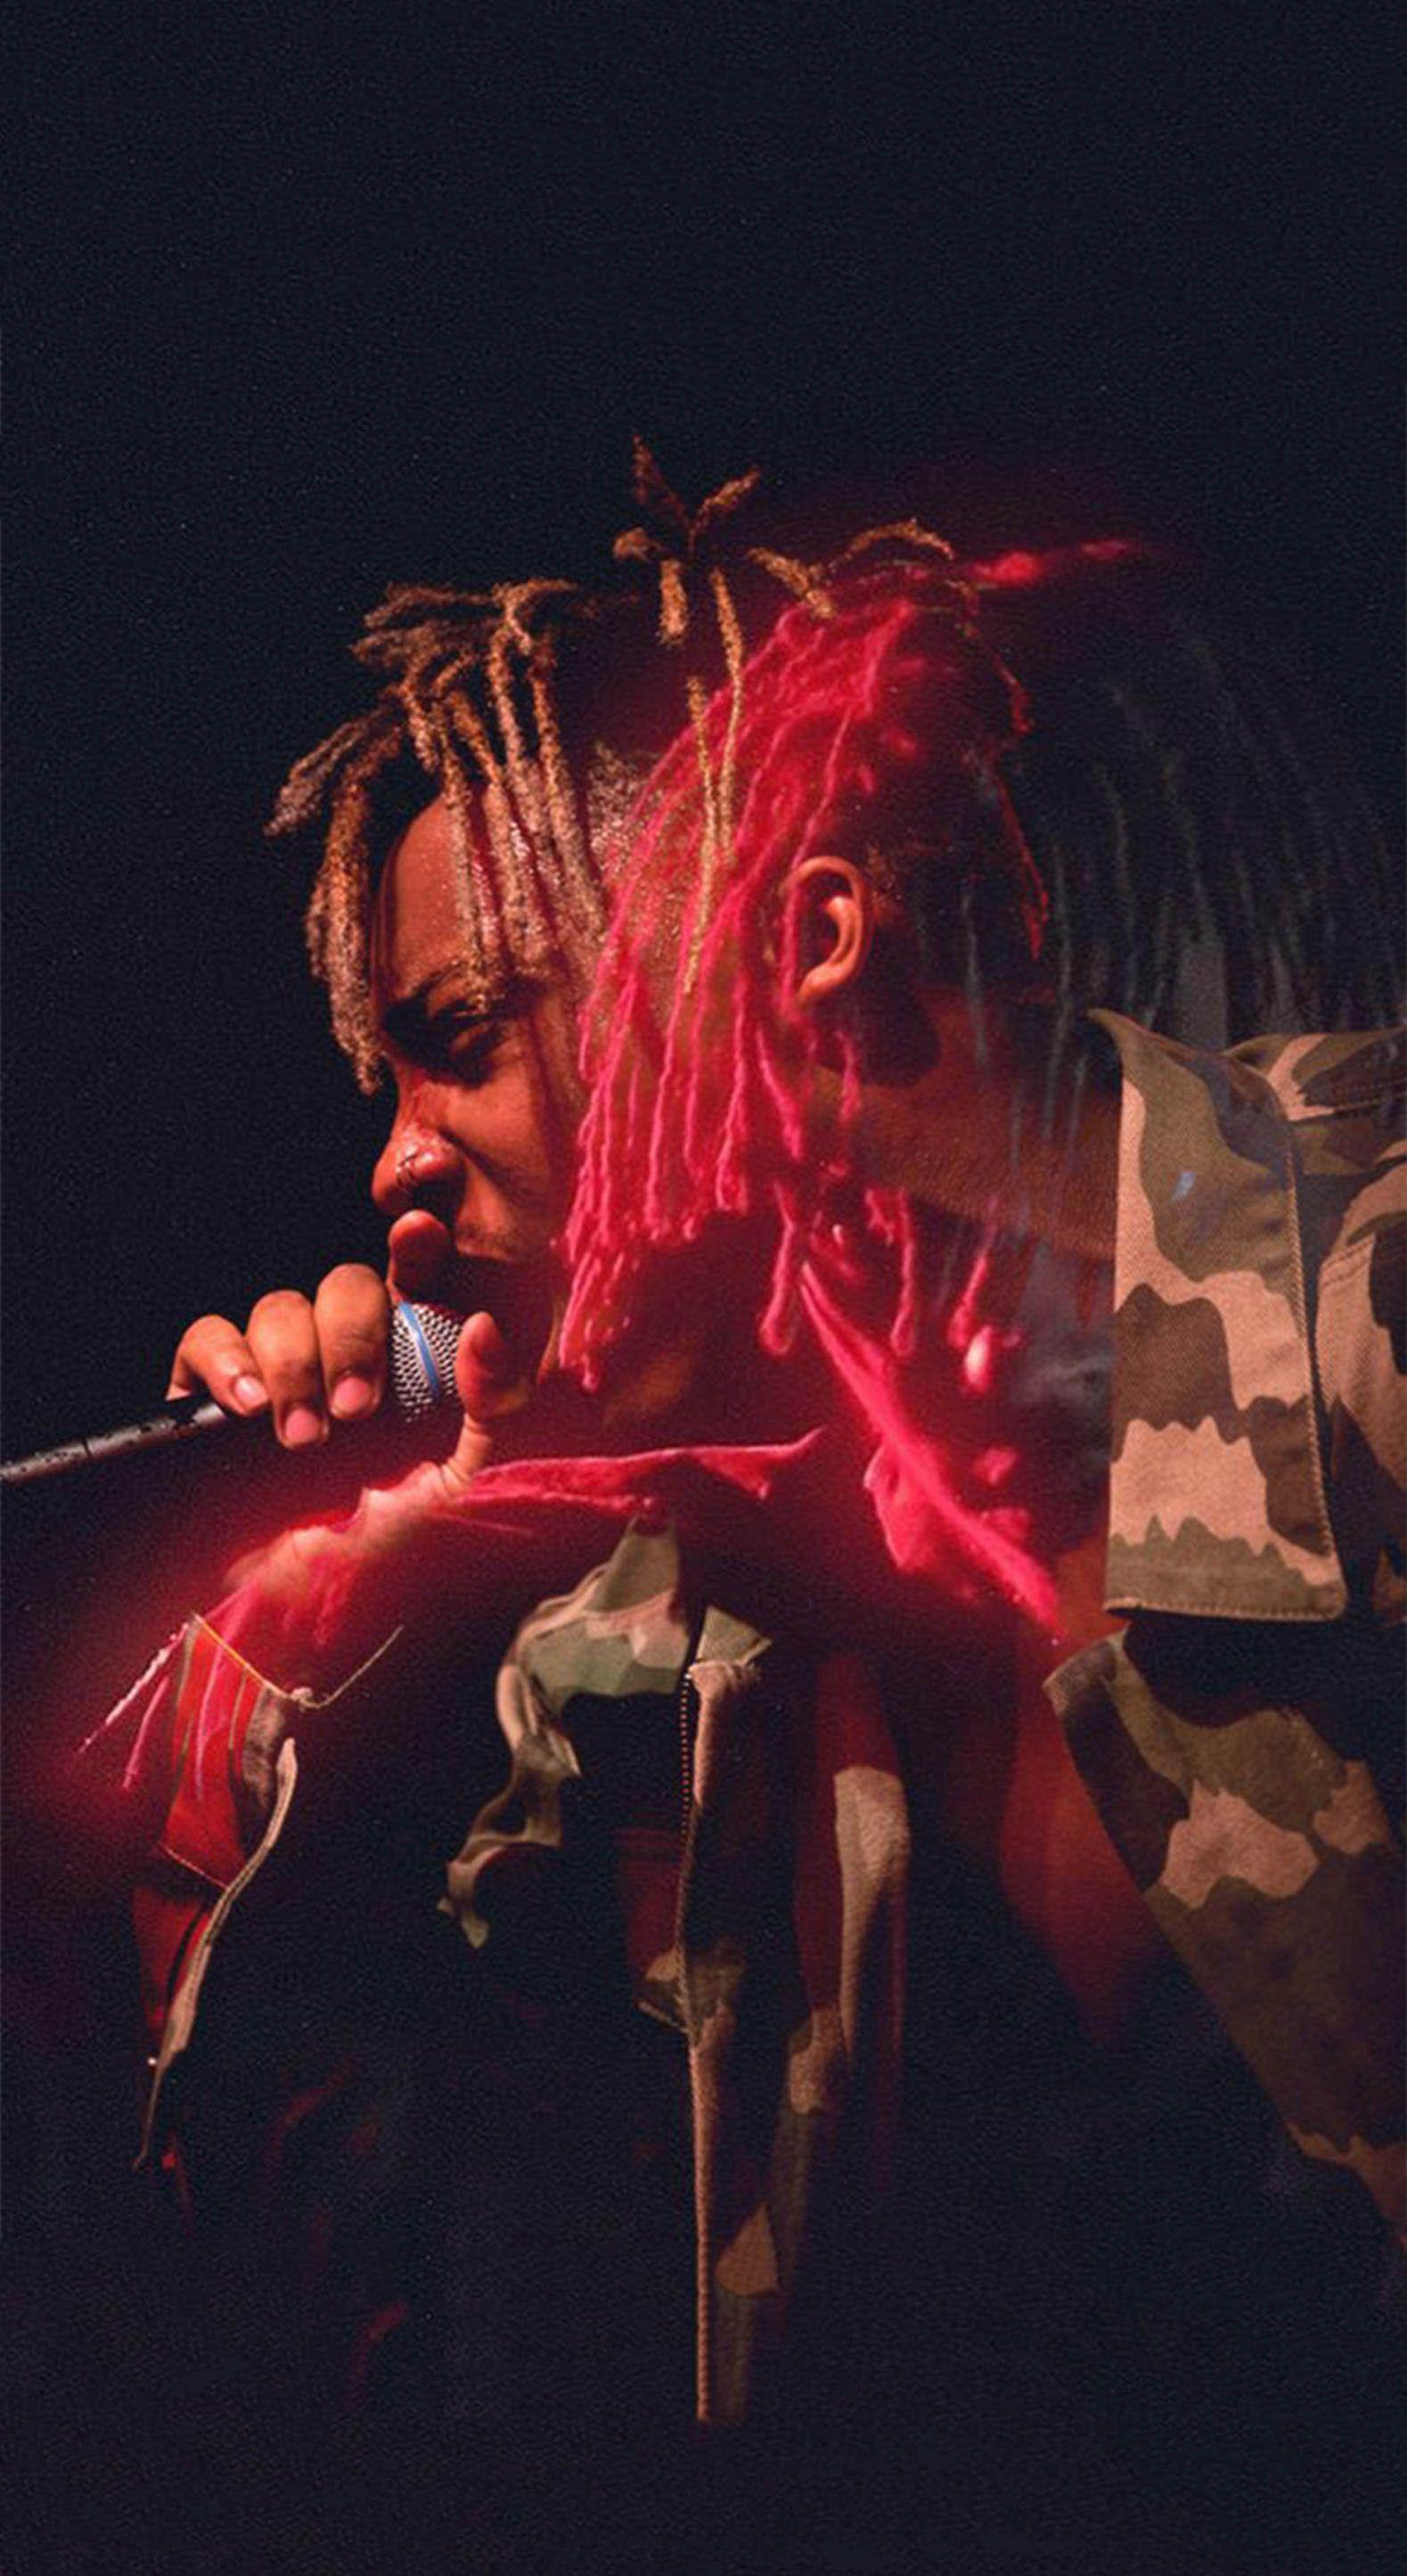 Live Juice Wrld Wallpapers Wallpaper Cave Eternal atake came out on march 6. live juice wrld wallpapers wallpaper cave